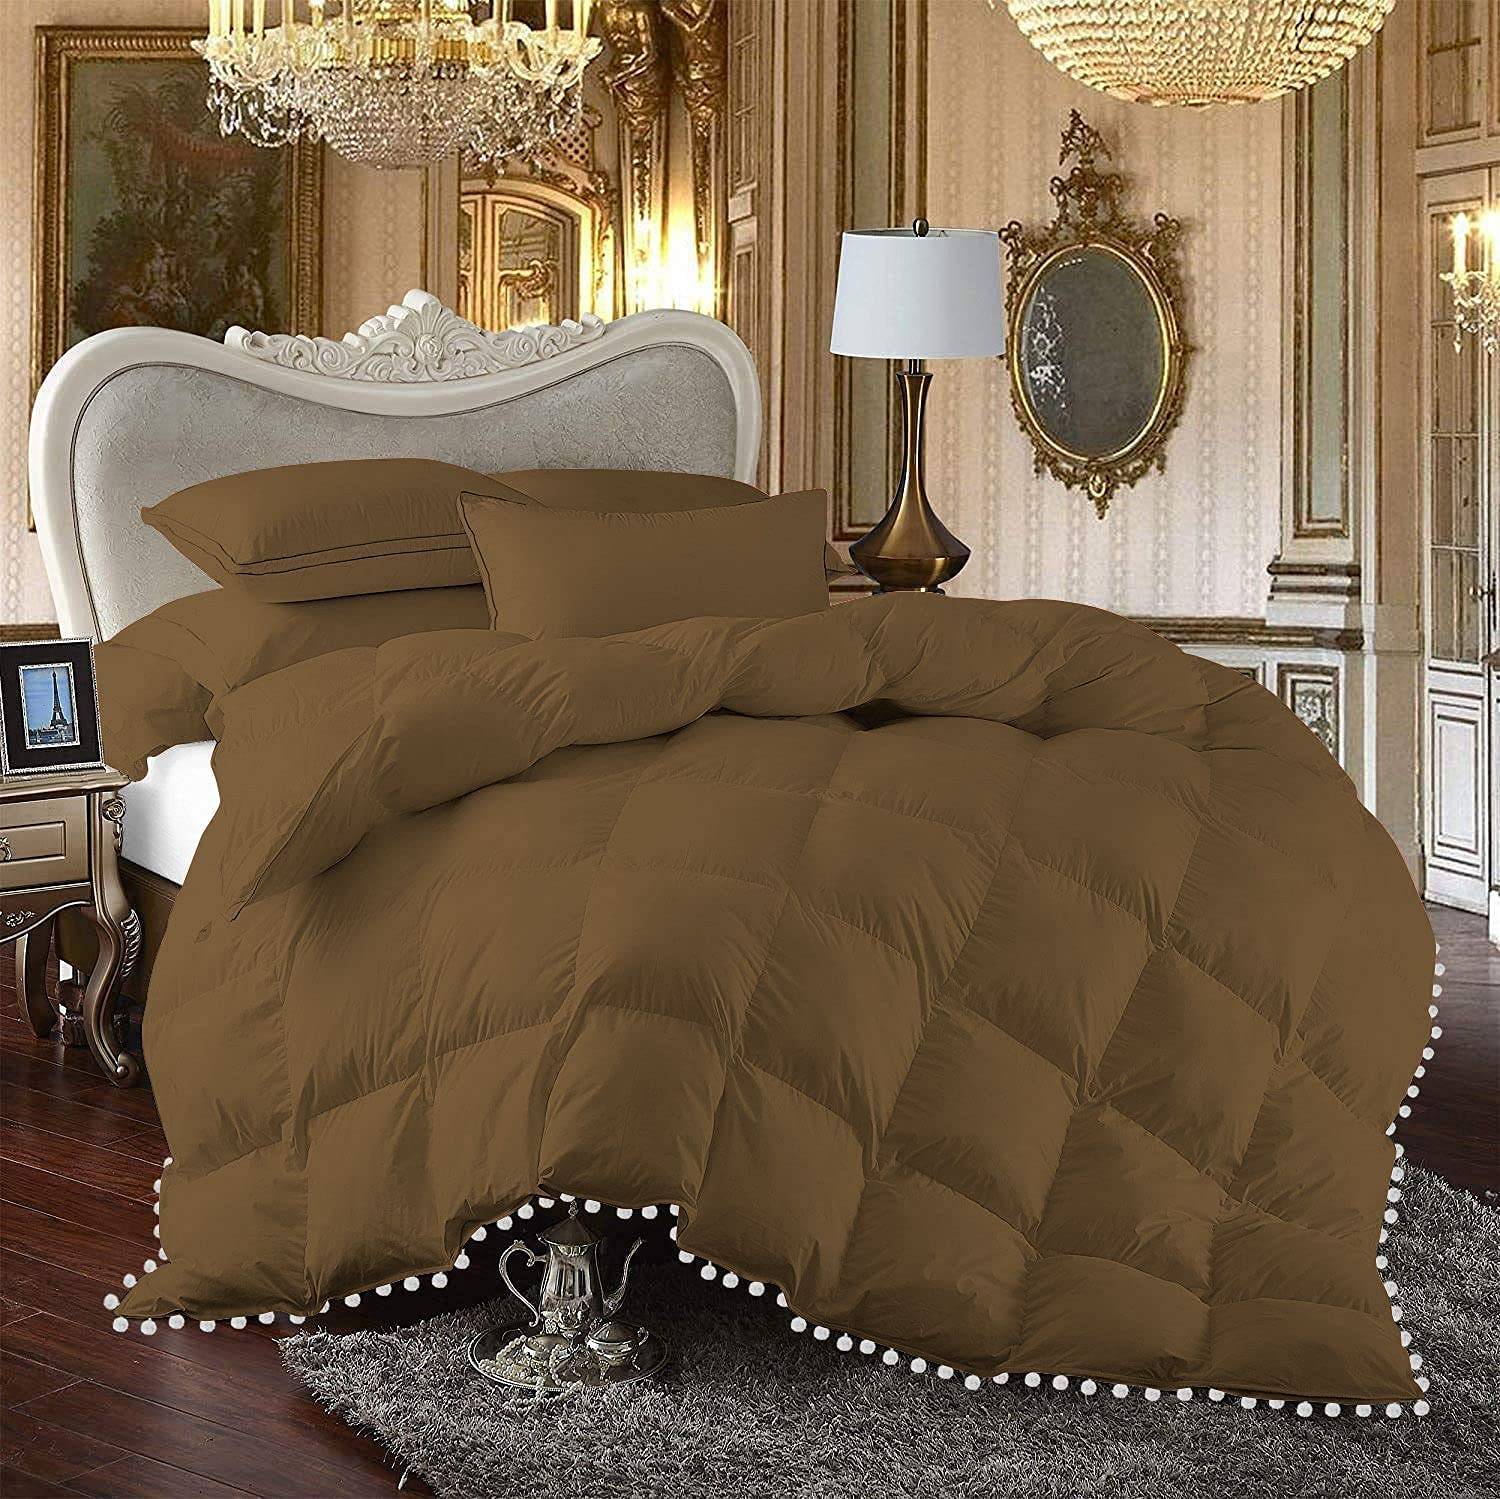 All Seasons 1 Piece Beautiful Comfort Design Looking Pom At the price Box Max 69% OFF